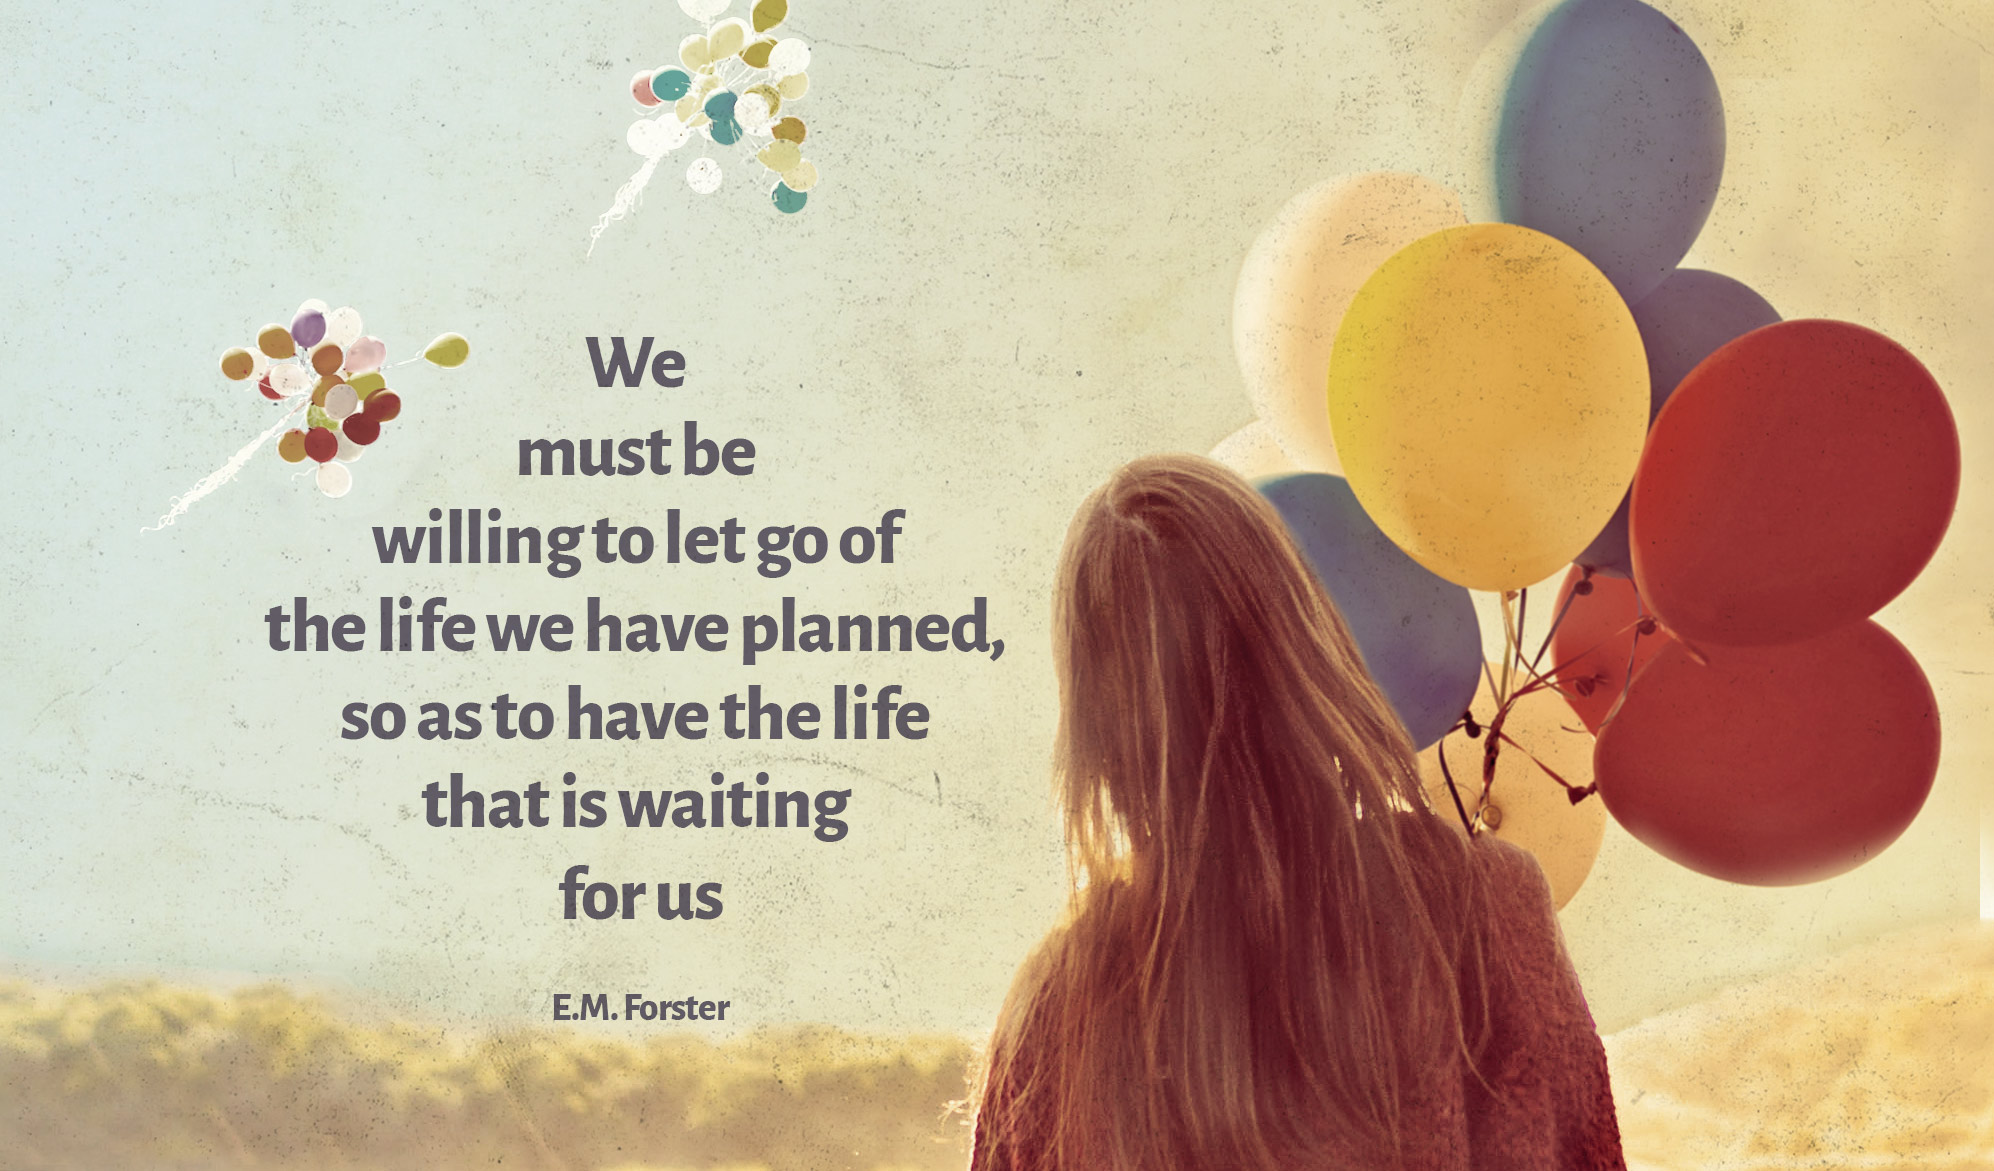 daily inspirational quote image:woman holding balloons is watching bunches of balloons flying away